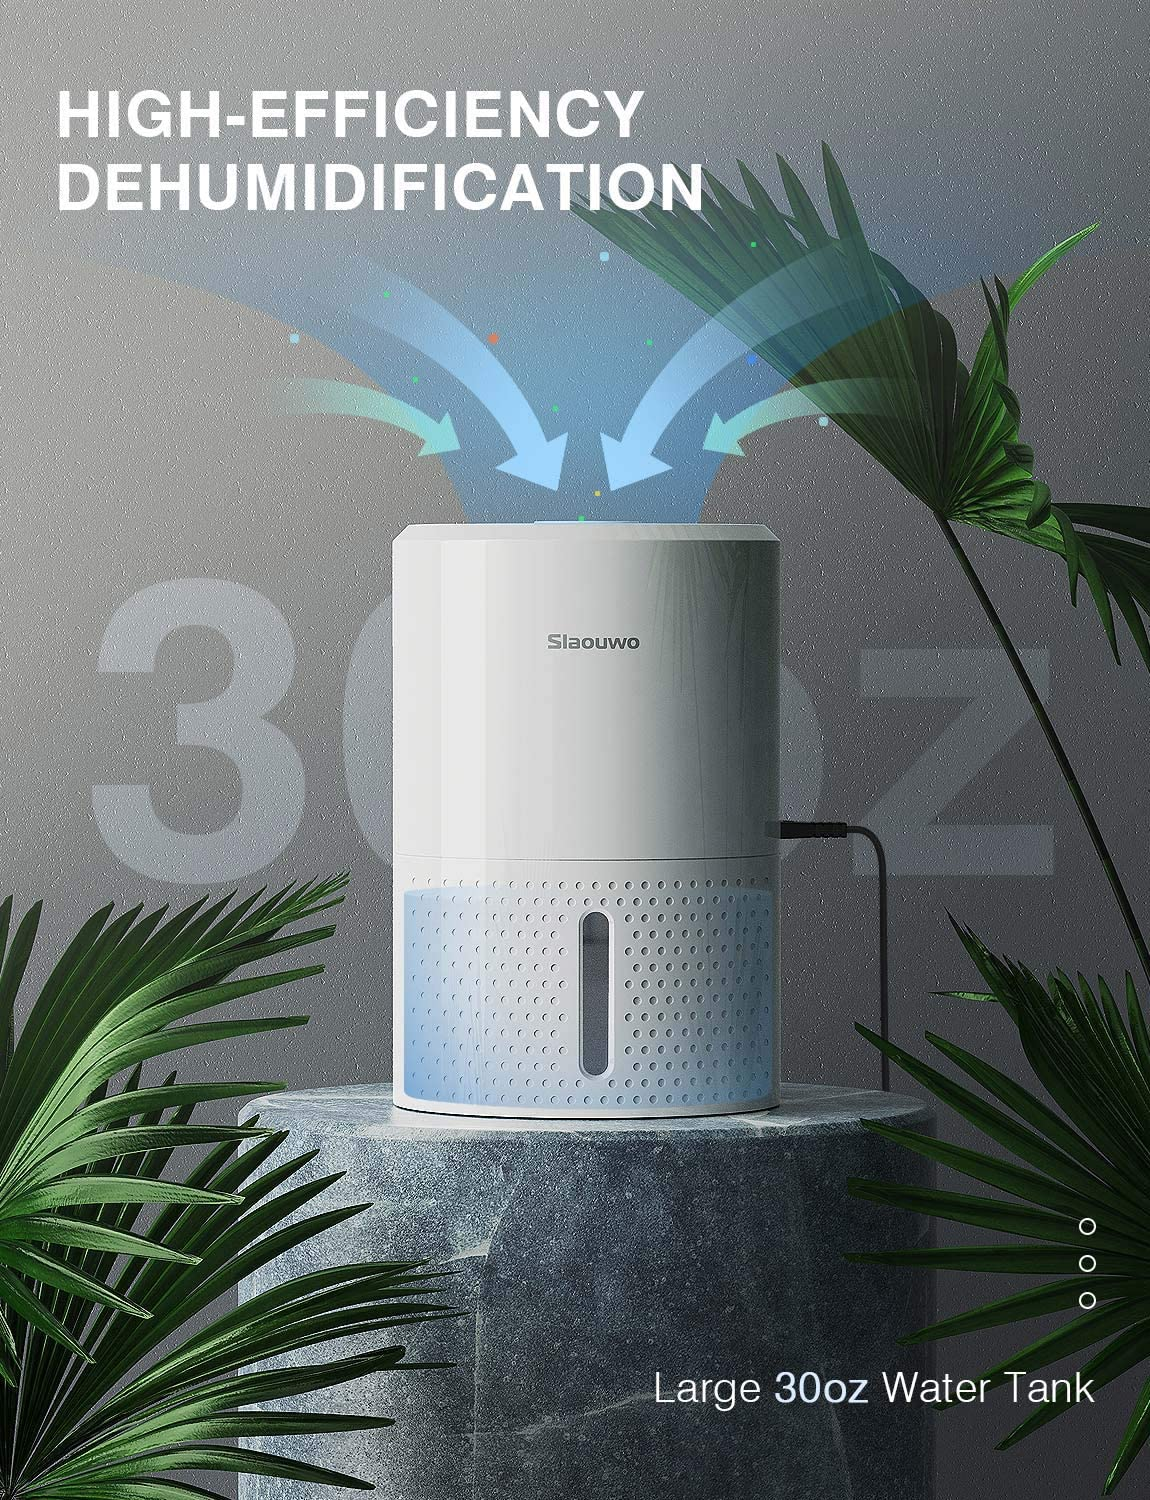 Small Dehumidifier Portable Dehumidifier with Indoor Digital Hygrometer Mini Dehumidifier with Fully Auto-Off 2200 Cubic Feet Bedroom Quiet Dehumidifiers for Home Closet Basements 190 Sq ft